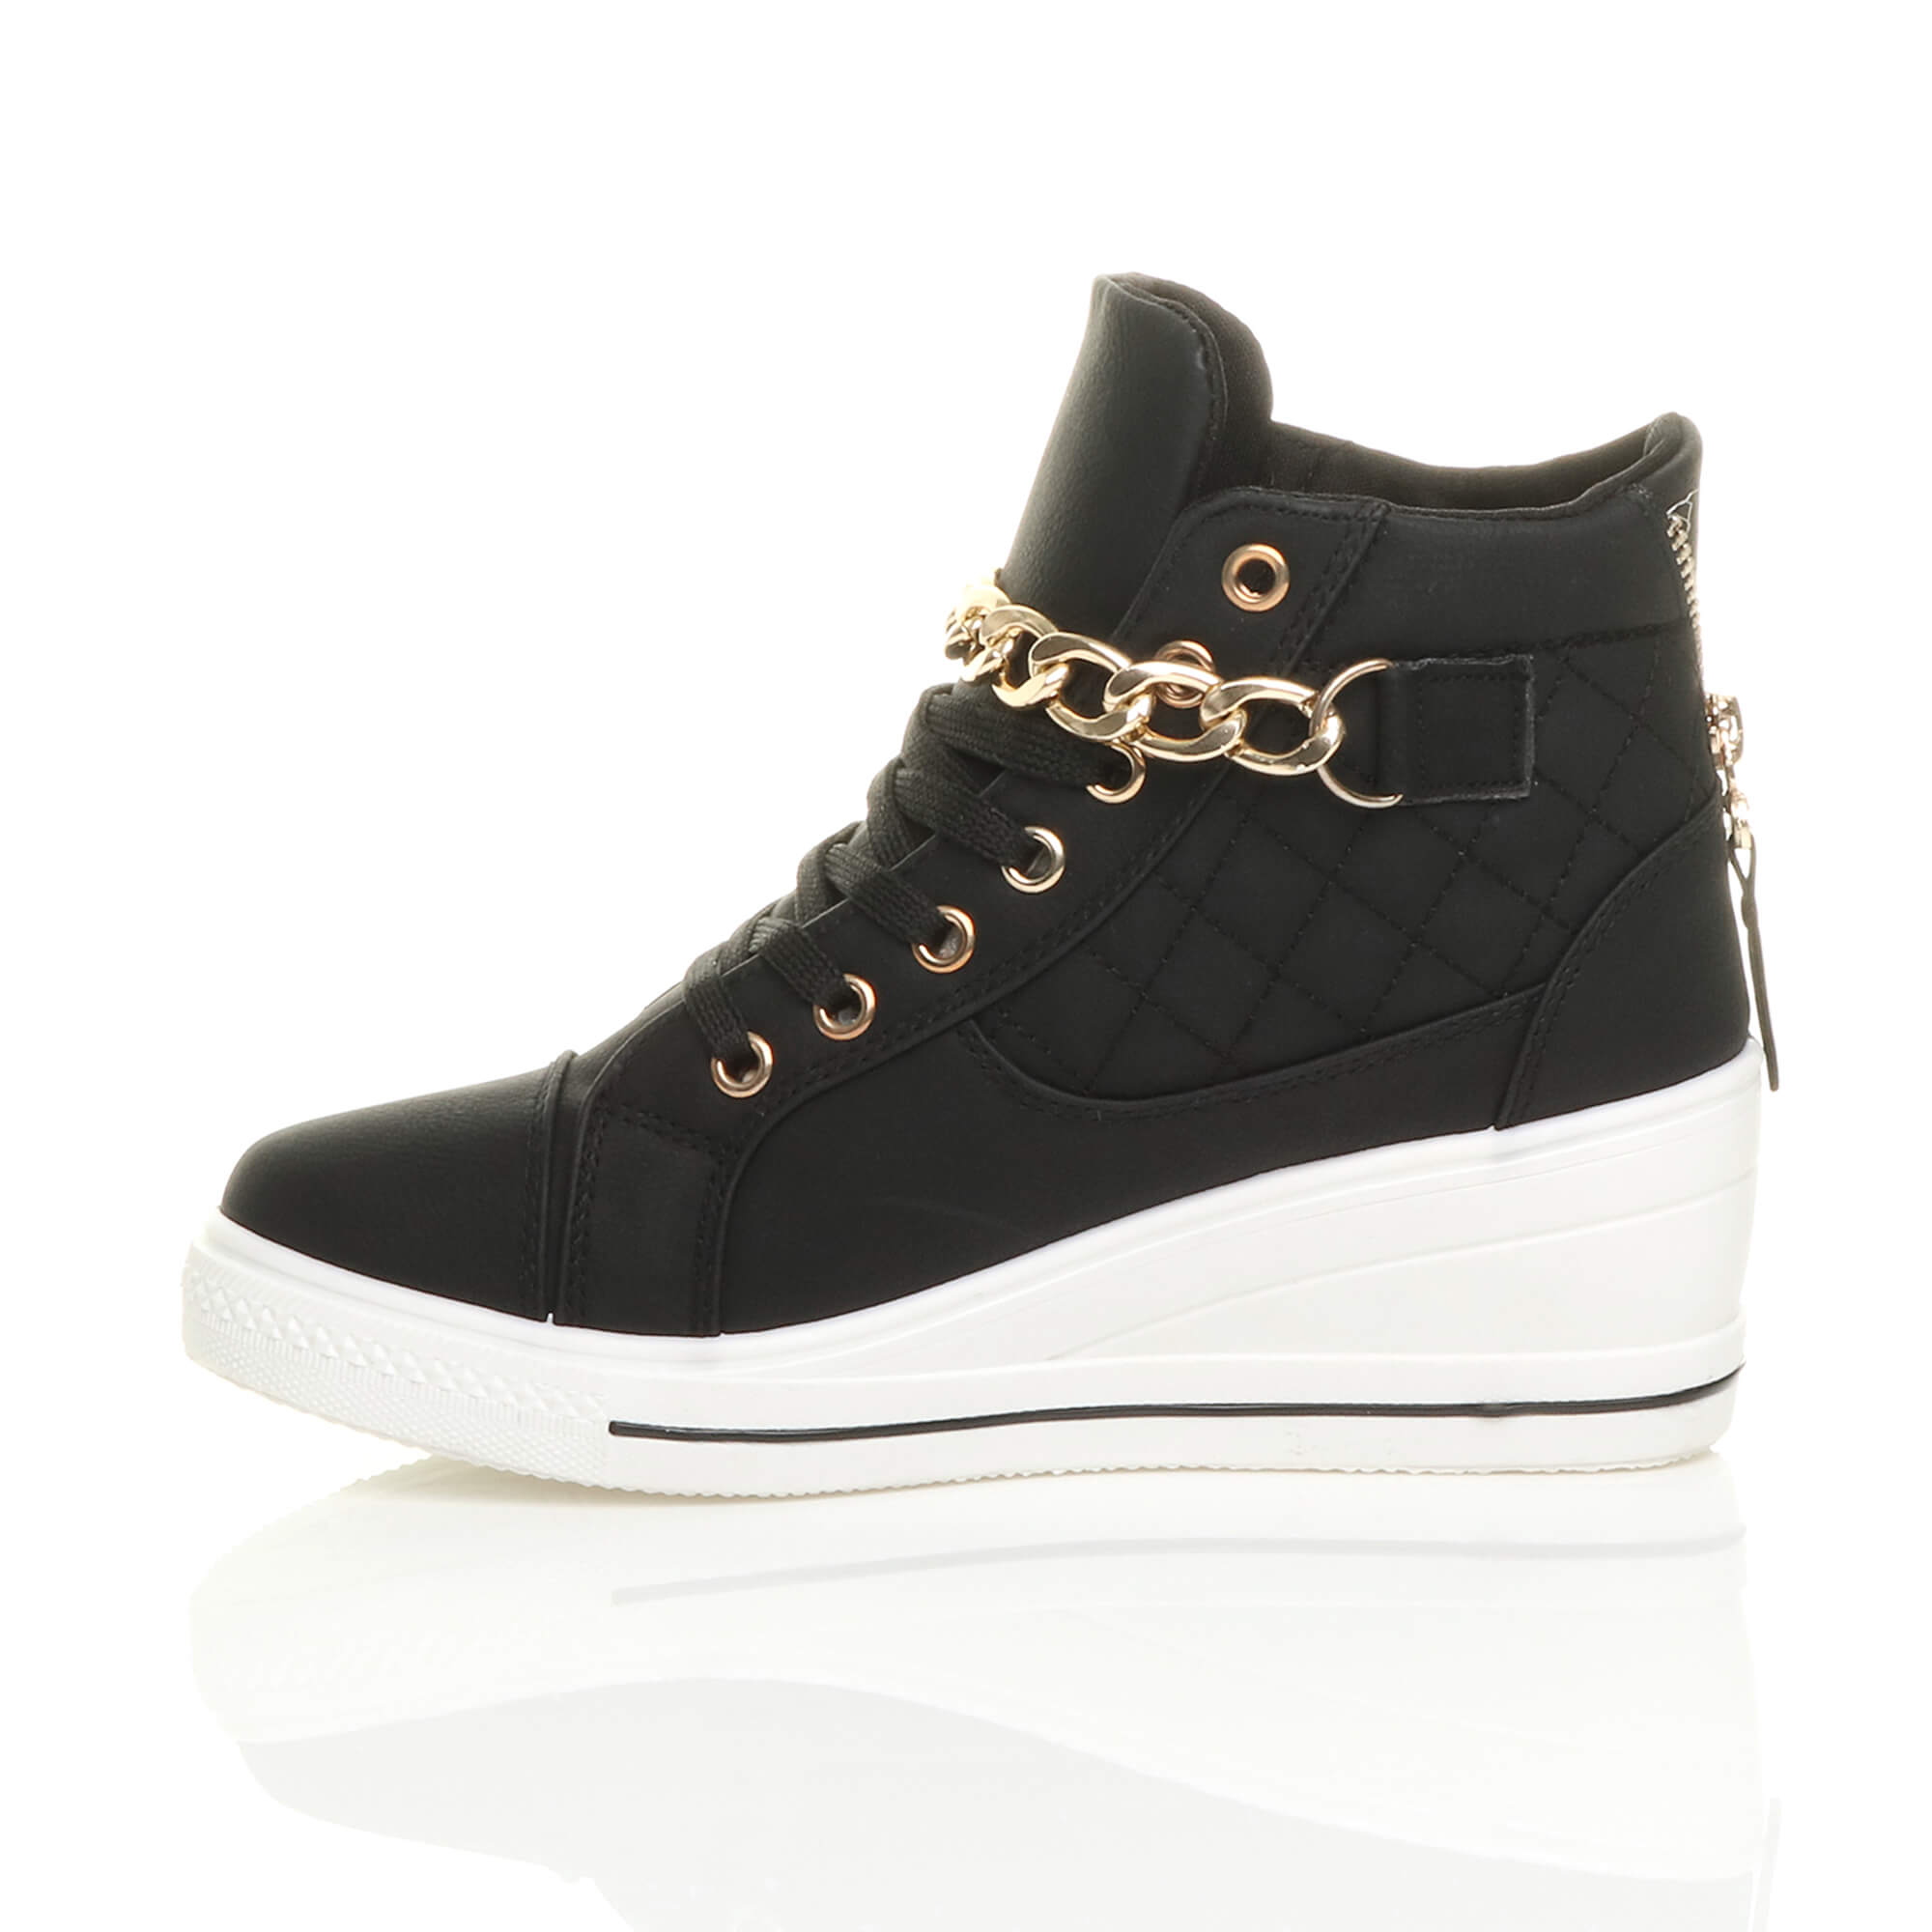 womens mid heel wedge platform lace up high top